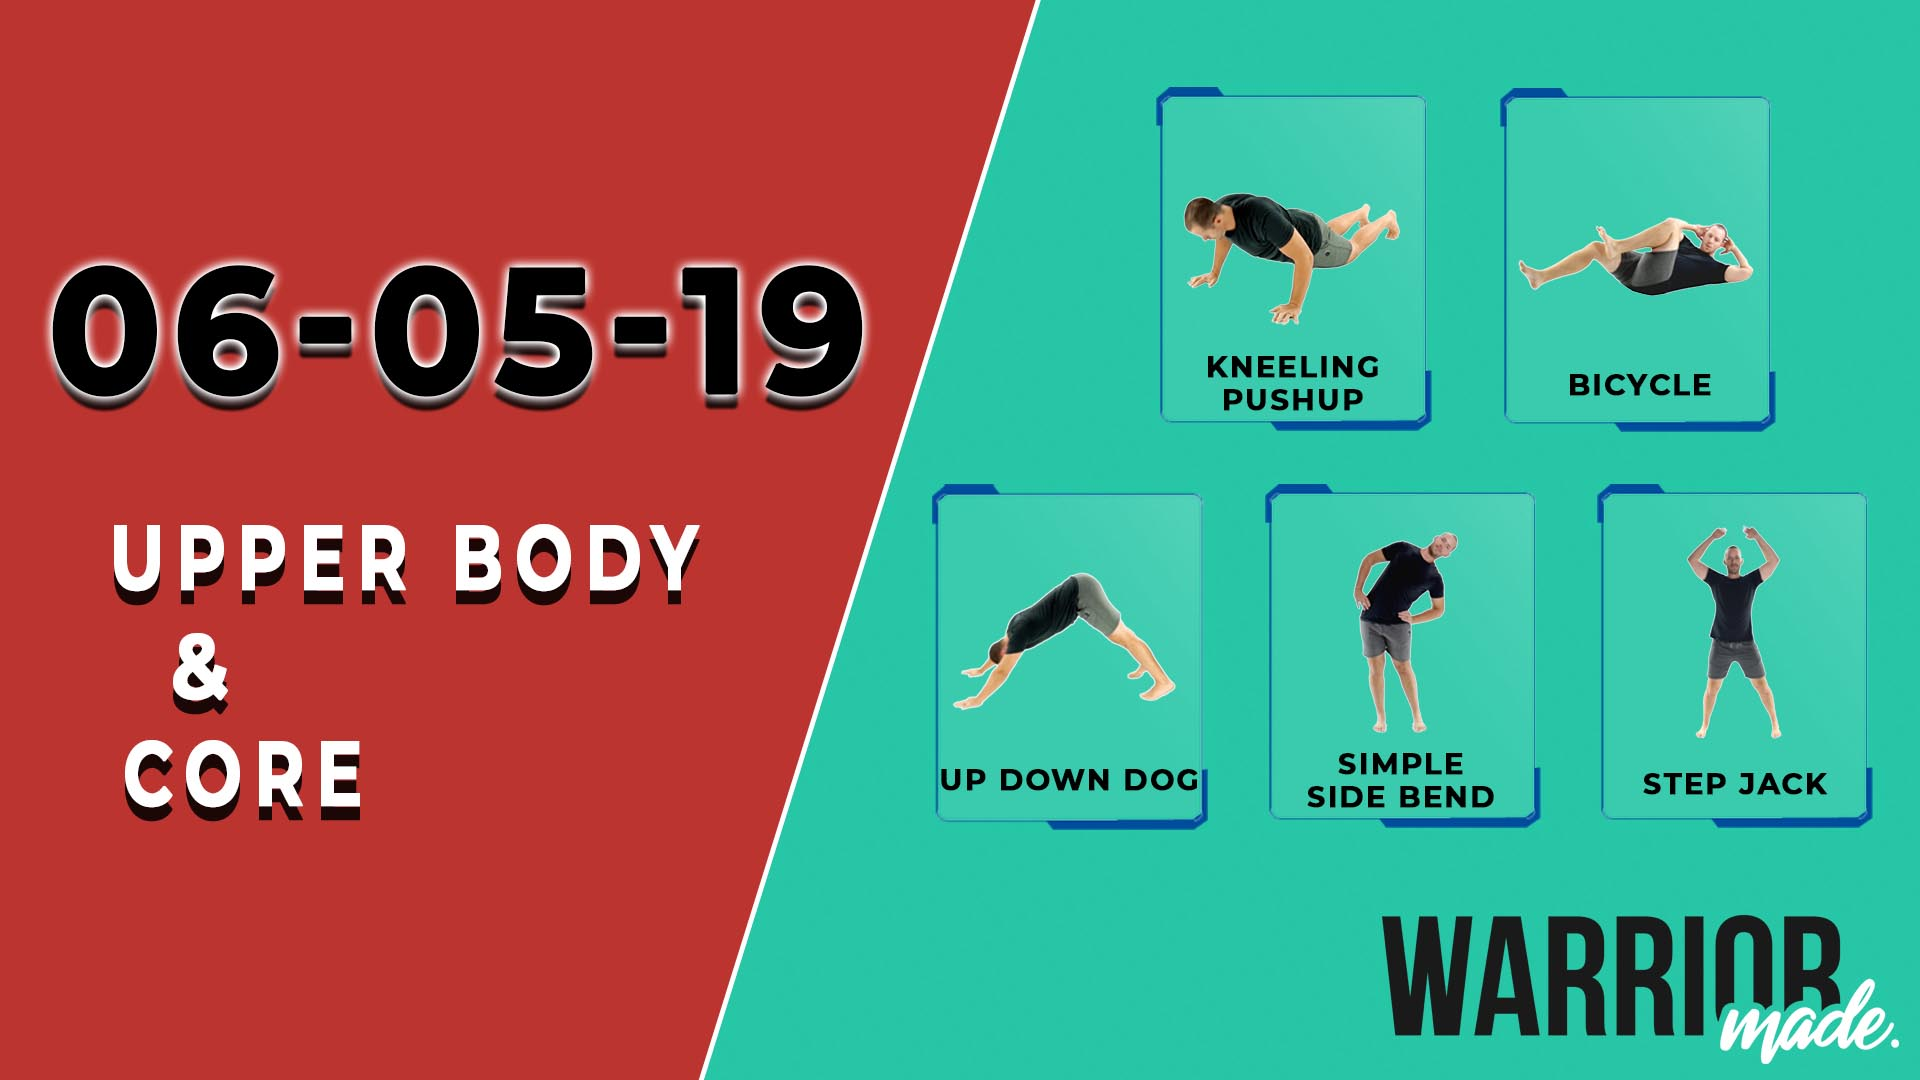 workouts-06-05-19